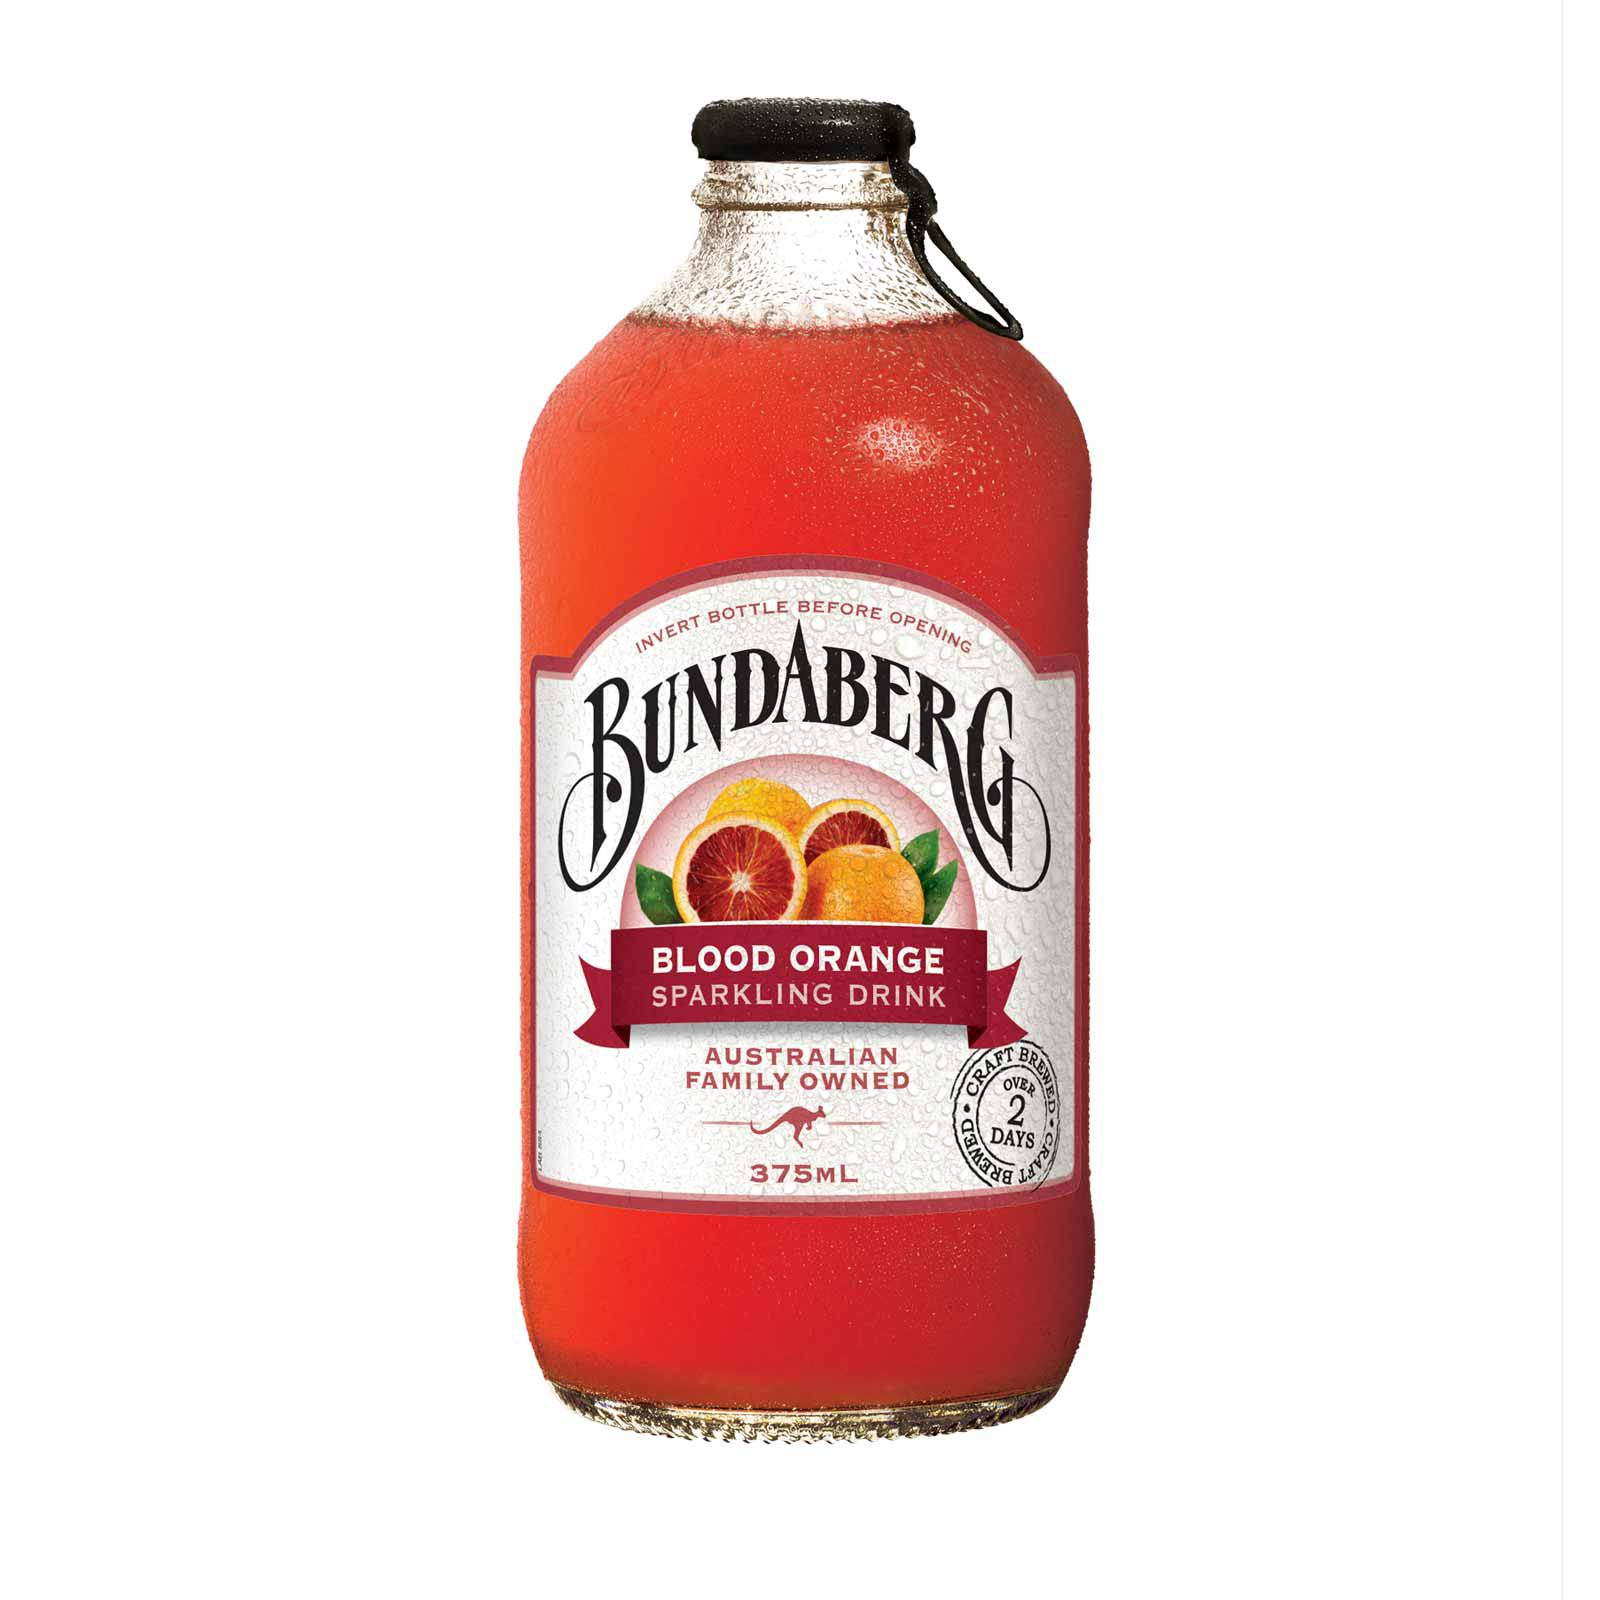 products-bundaberg-blood-orange-a